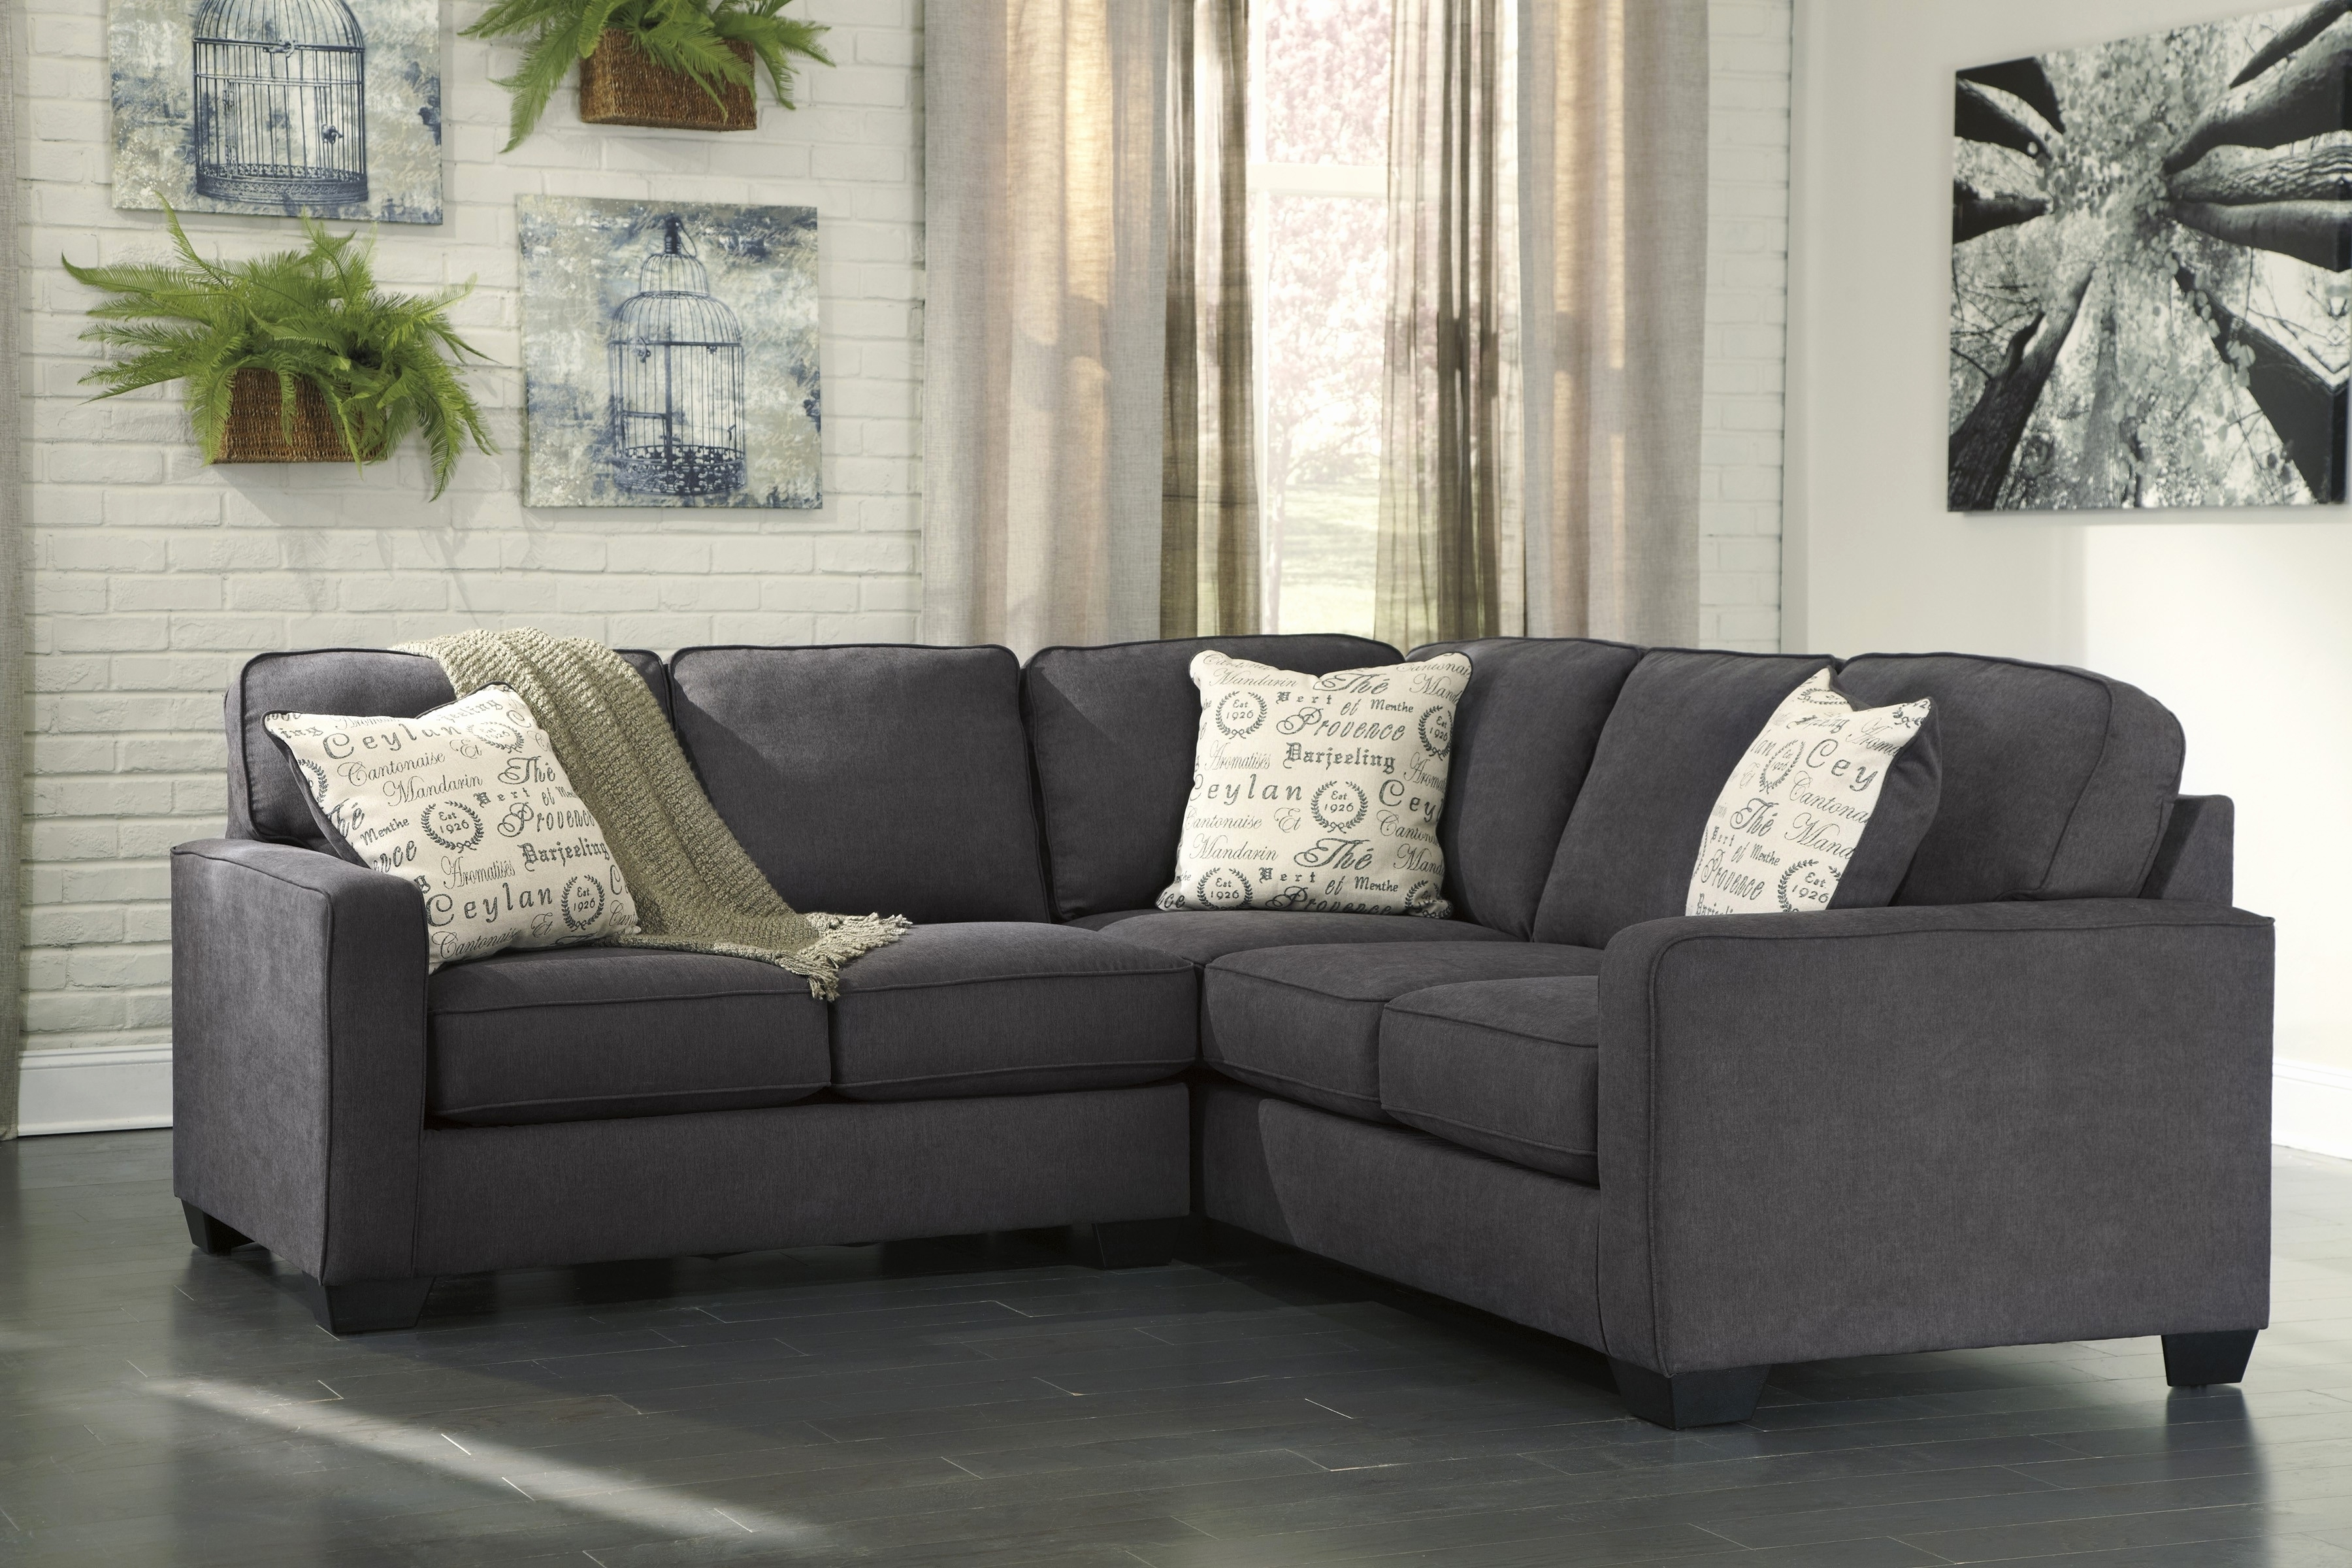 Awesome Couch With 2 Chaise Lounges 2018 – Couches And Sofas Ideas For Most Popular Sectional Sofas With 2 Chaises (View 2 of 20)